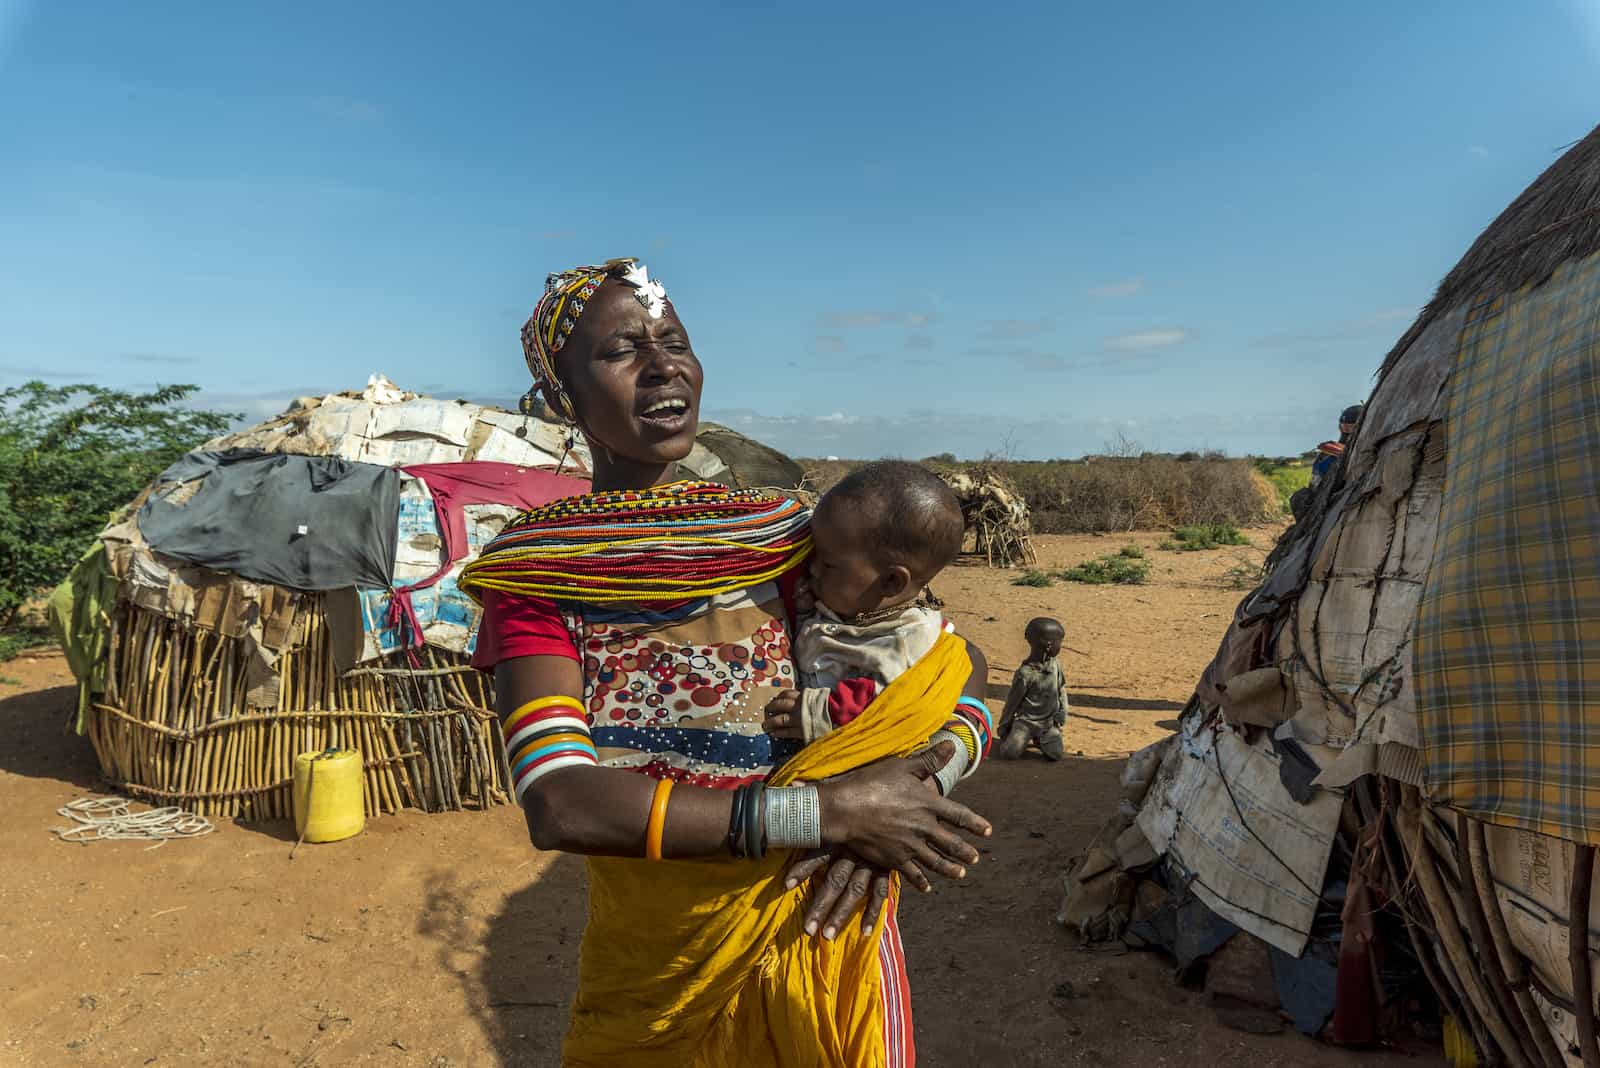 A woman stands outside holding a baby to her chest, standing in front of two small round huts.